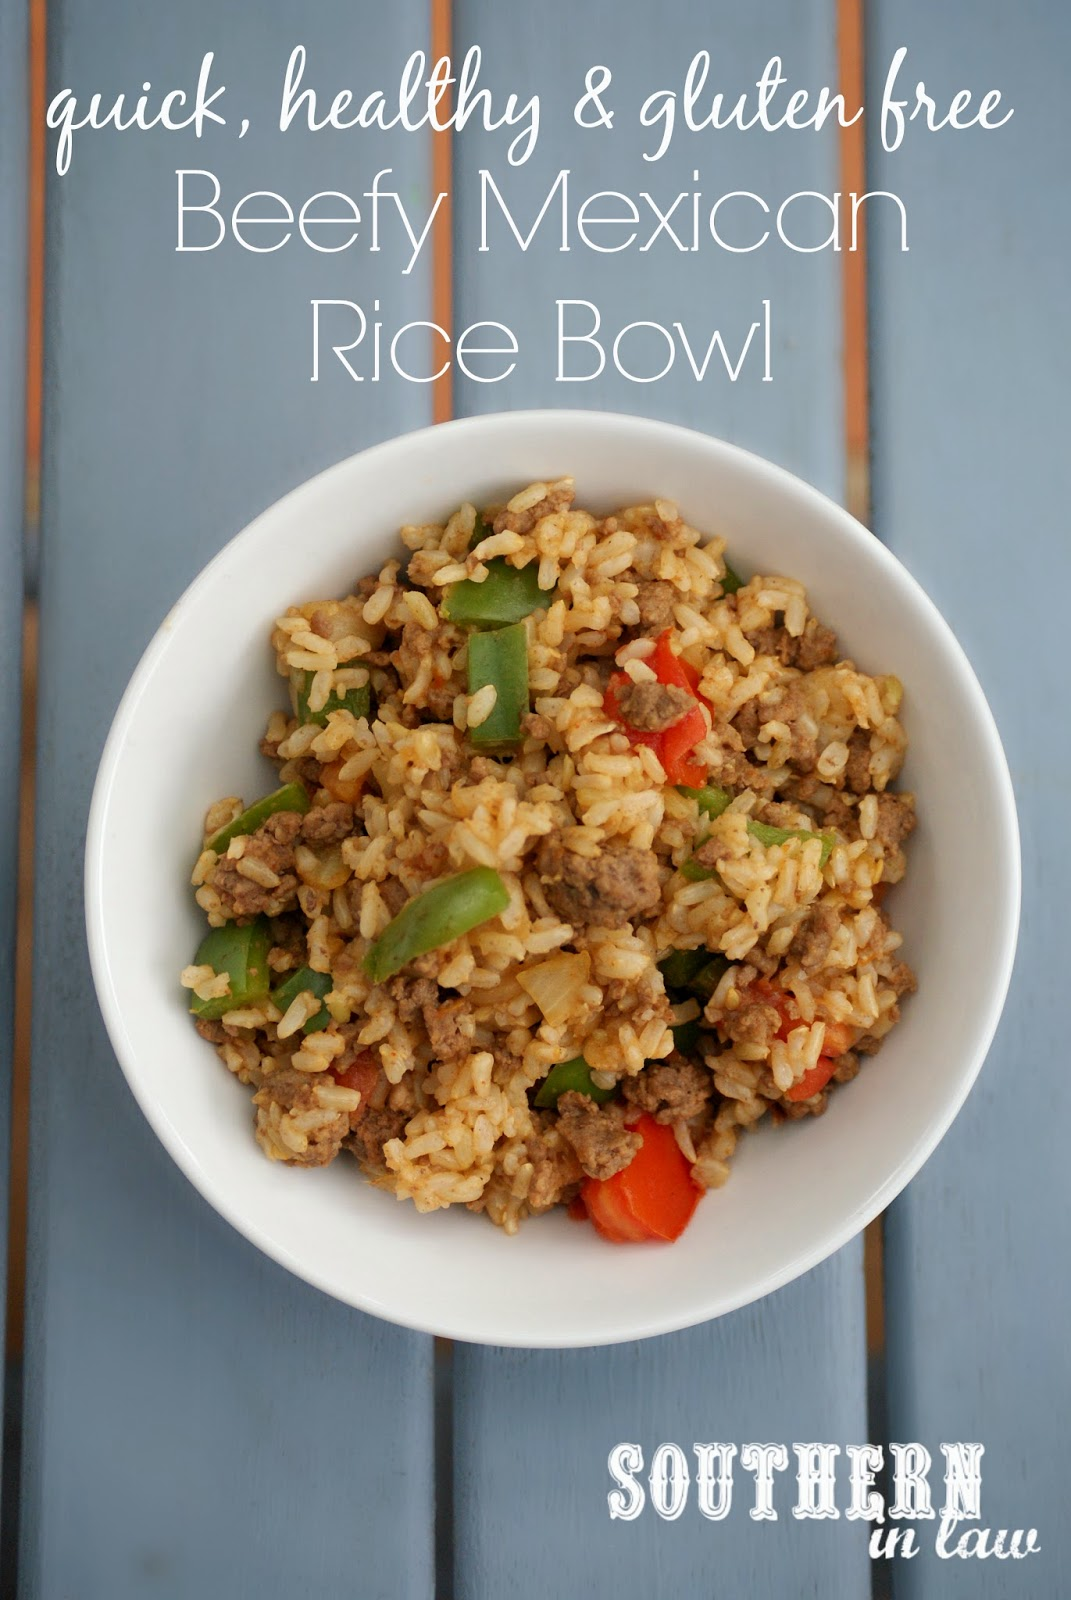 Healthy Mexican Beef Rice Bowl Recipe - gluten free, clean eating friendly, low fat